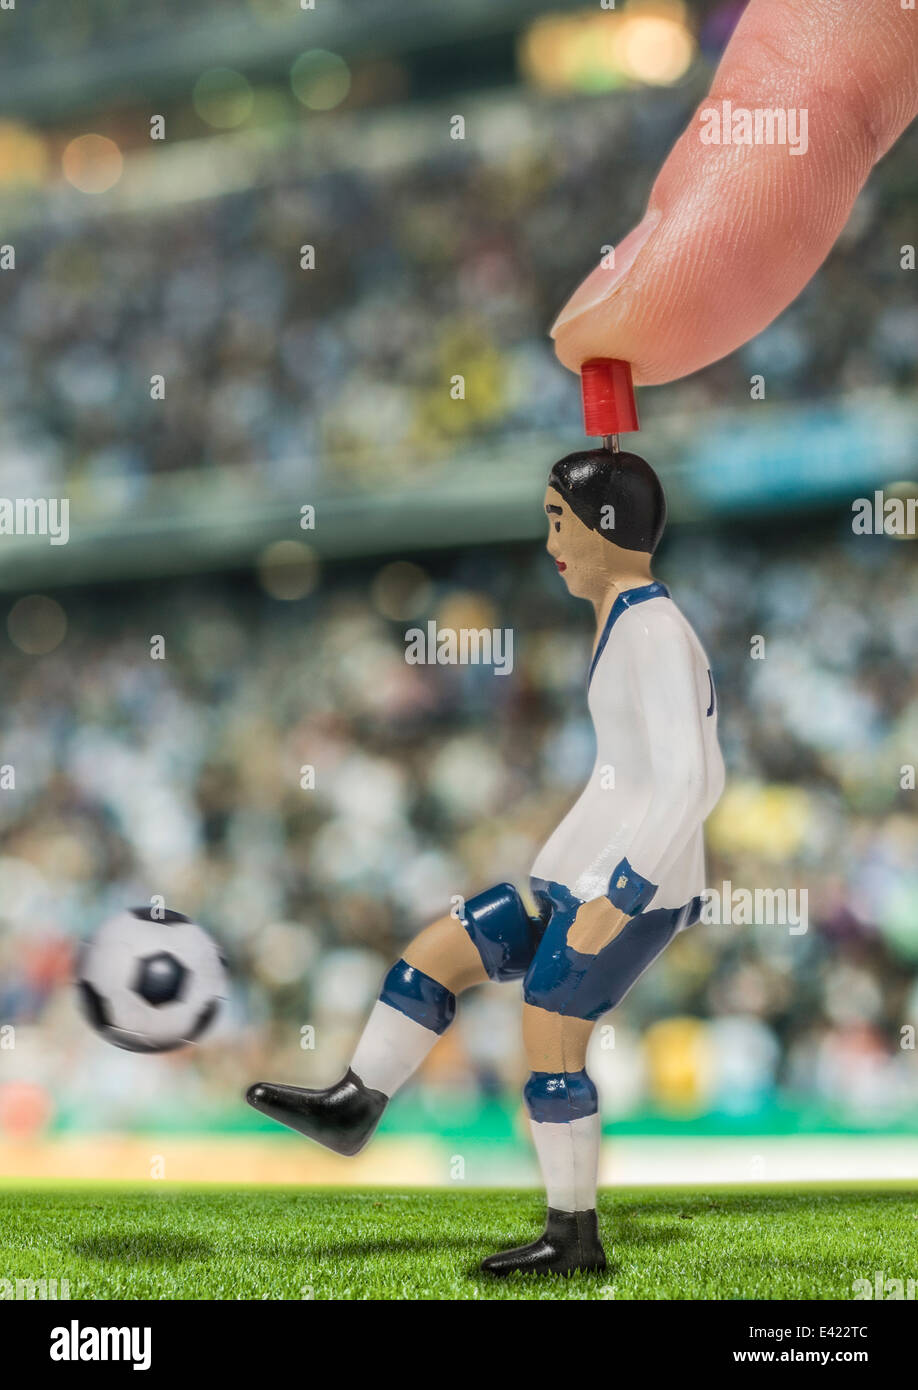 Digitally generated image of soccer player kicking ball in stadium - Stock Image